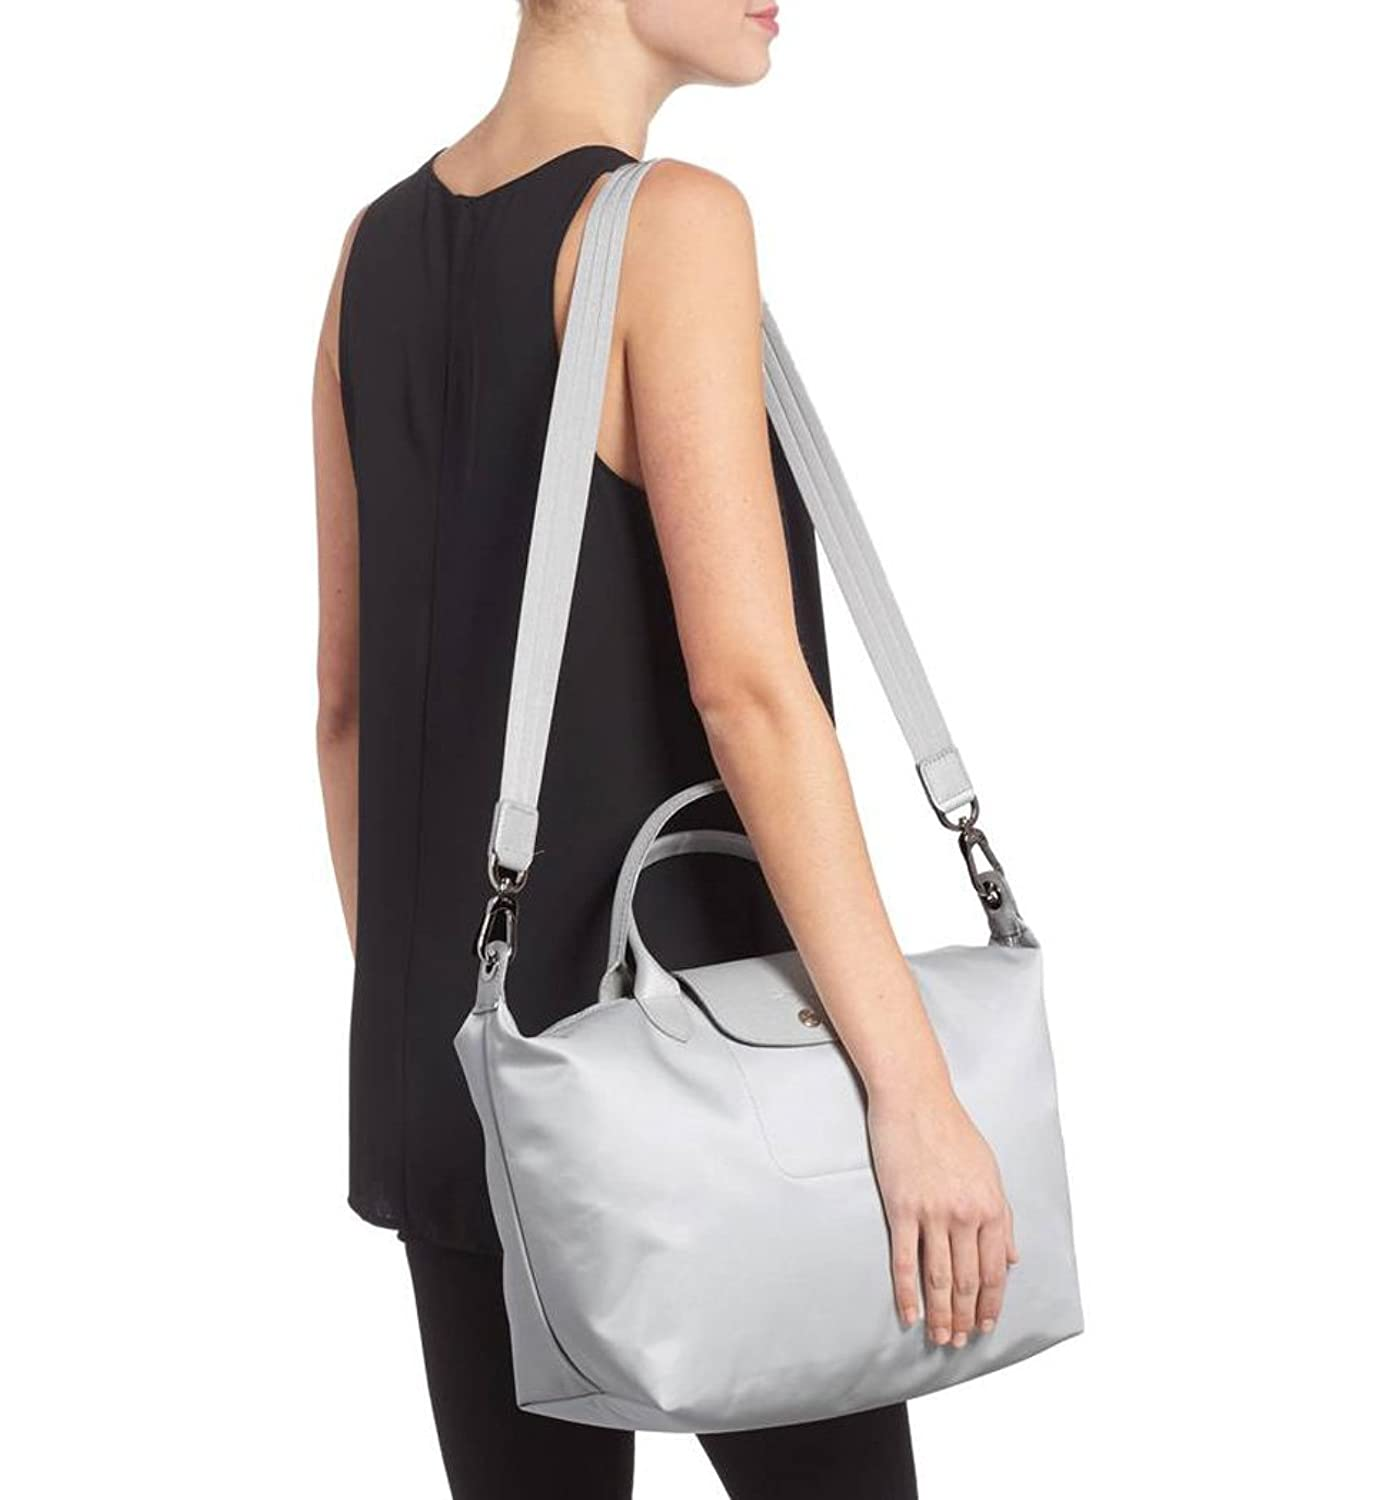 Longchamp Medium Le Pliage Neo Nylon Tote Top Handle Lc030 Longchample The City Shoulder Bag Silver Shoes